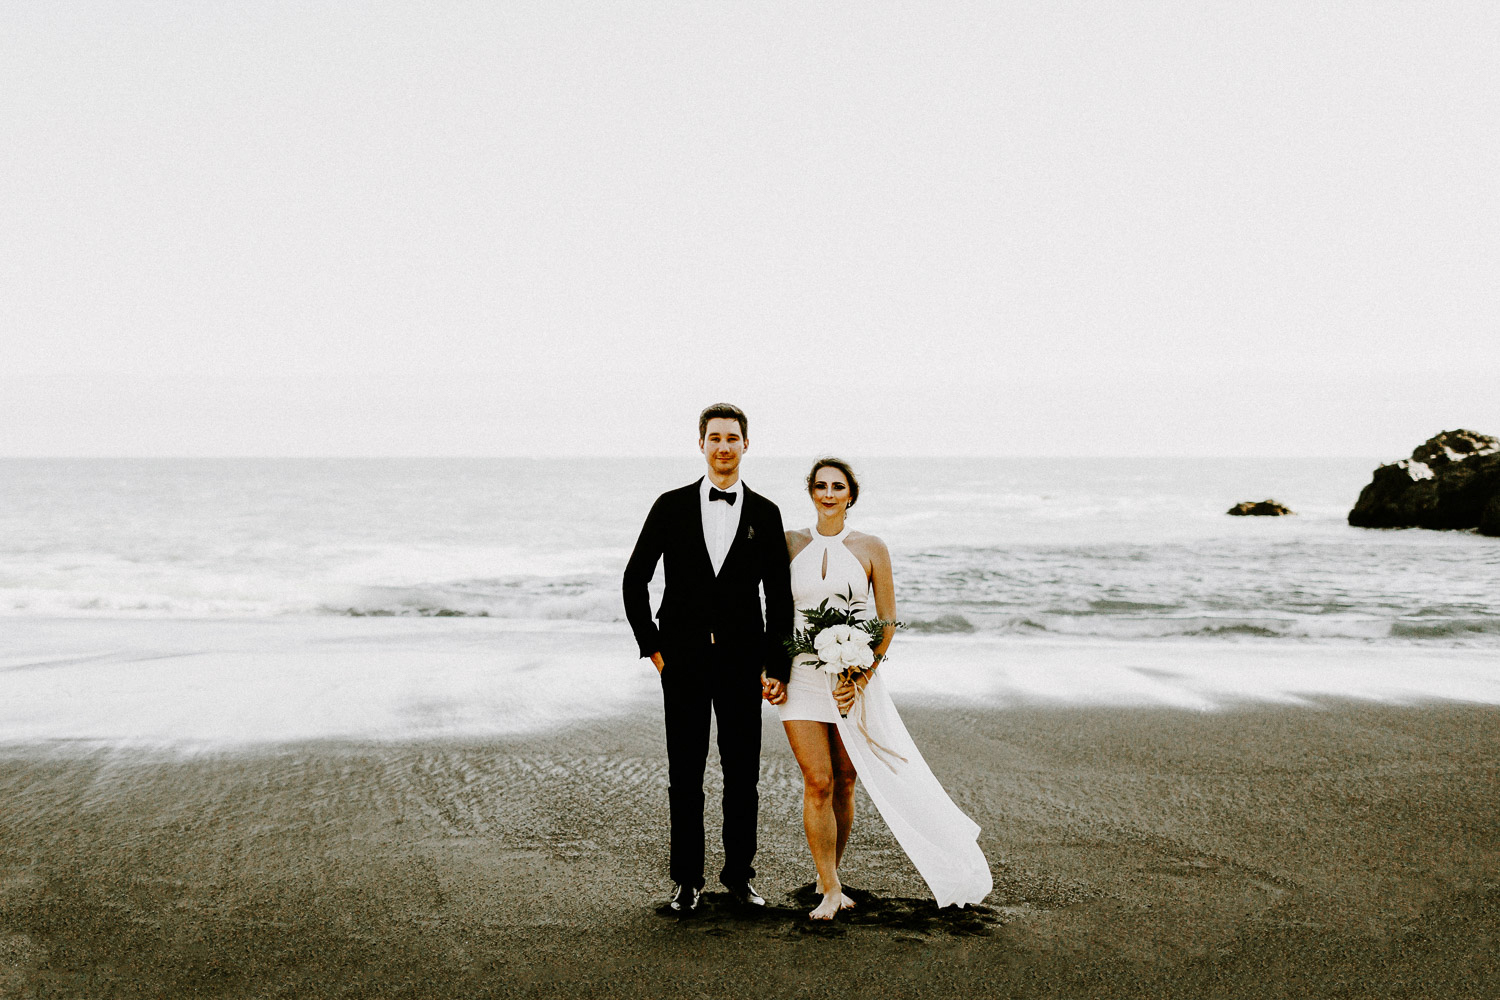 Image of groom stand together with bride on beach